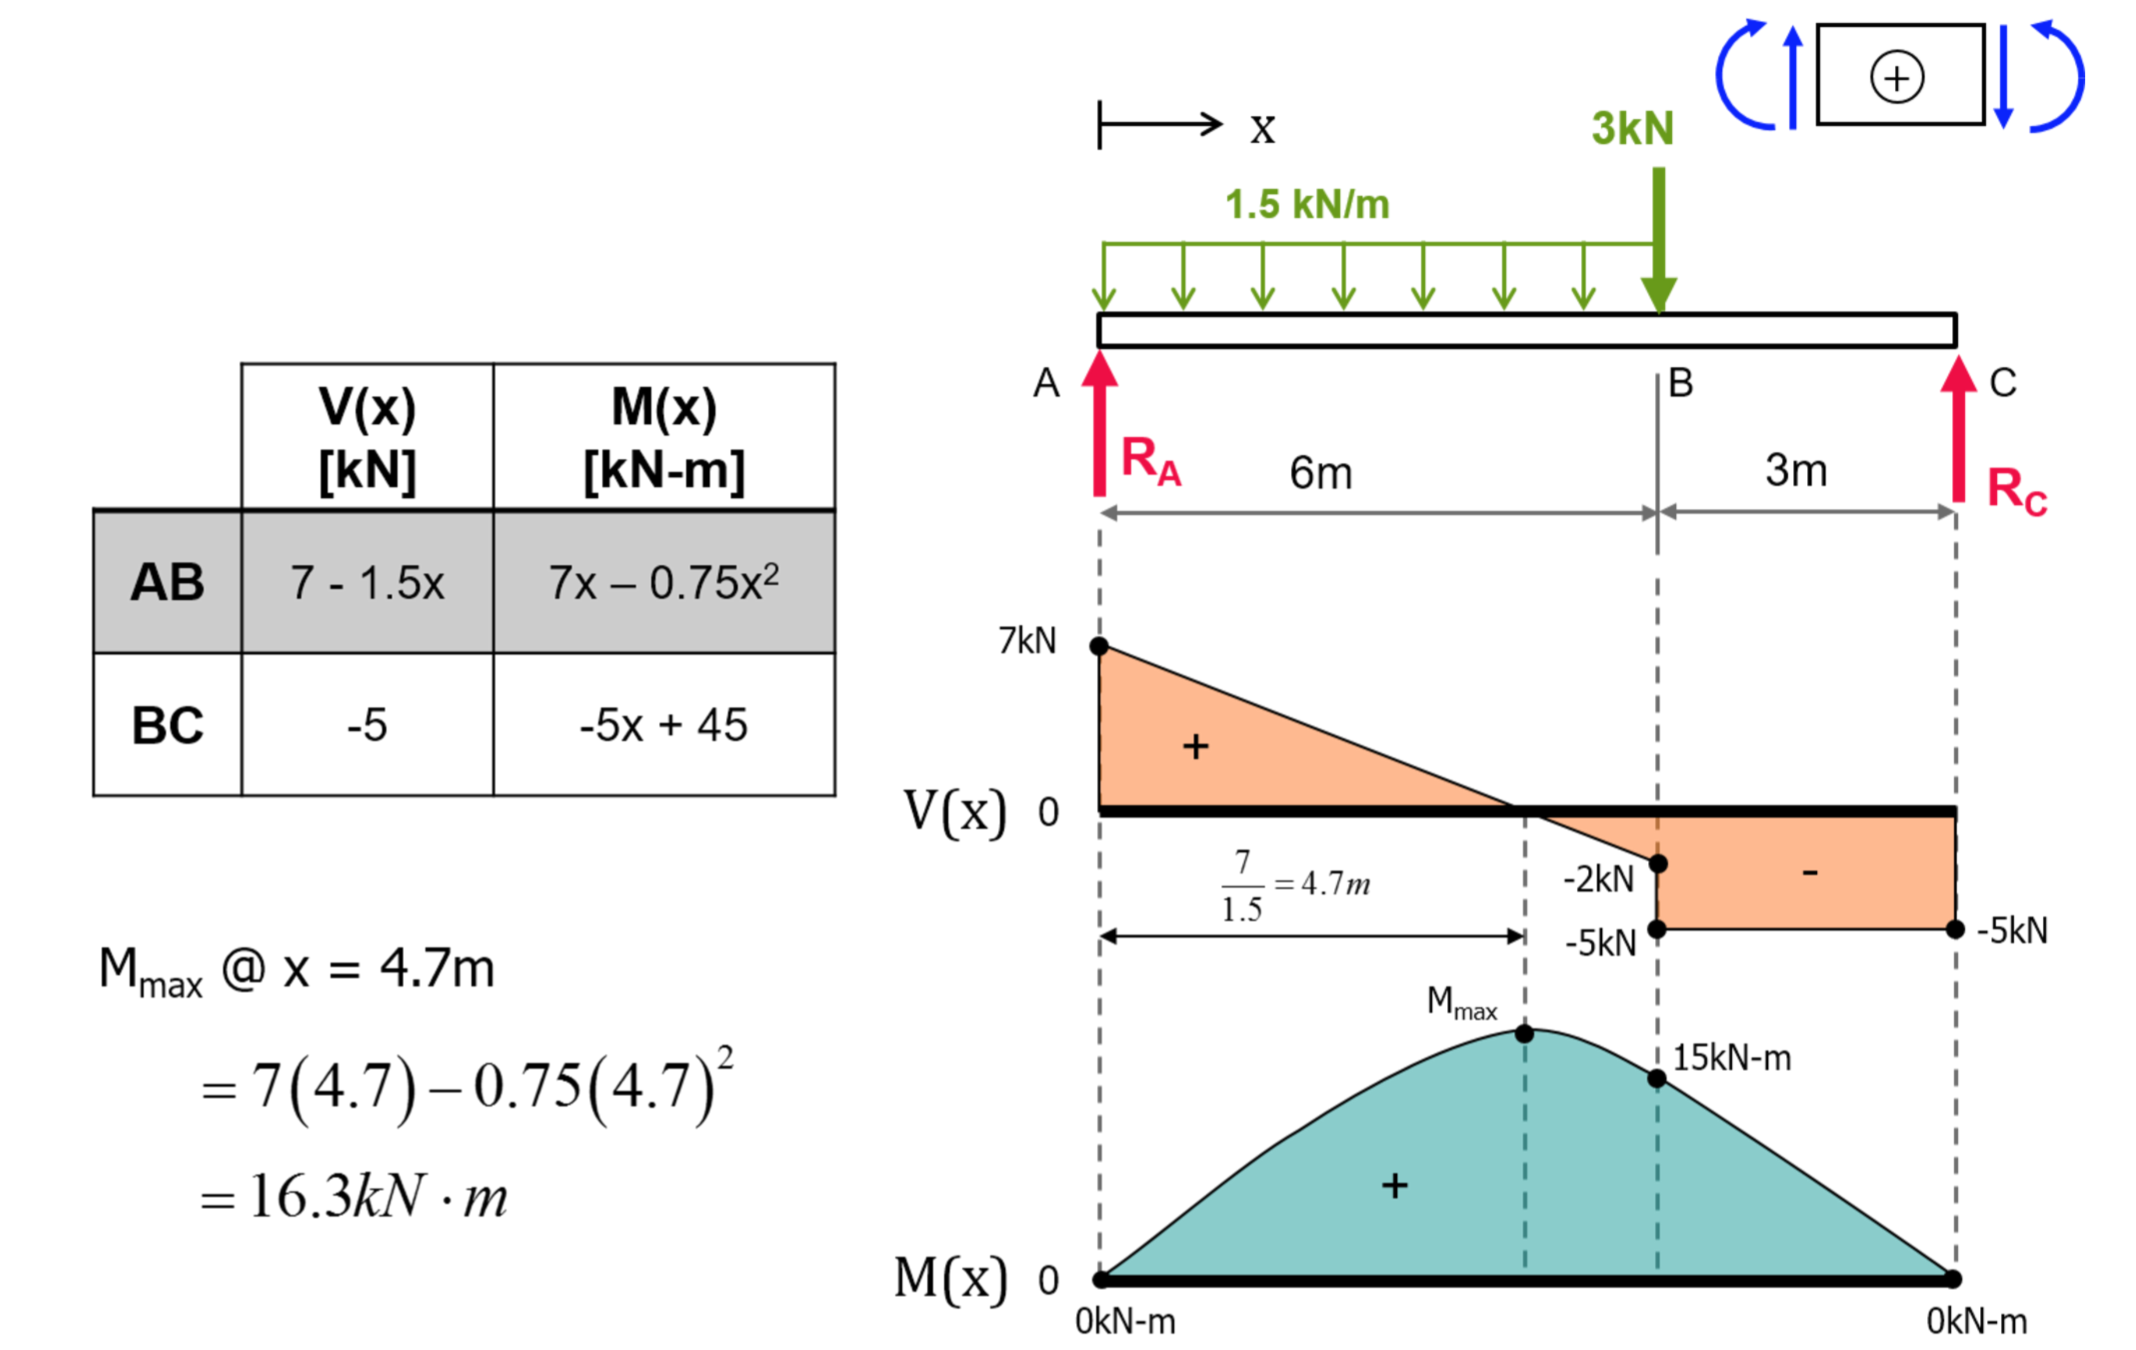 exercise shear force bending moment diagrams solution tu rh ocw tudelft nl shear and moment diagrams calculator moment and shear diagrams for frames